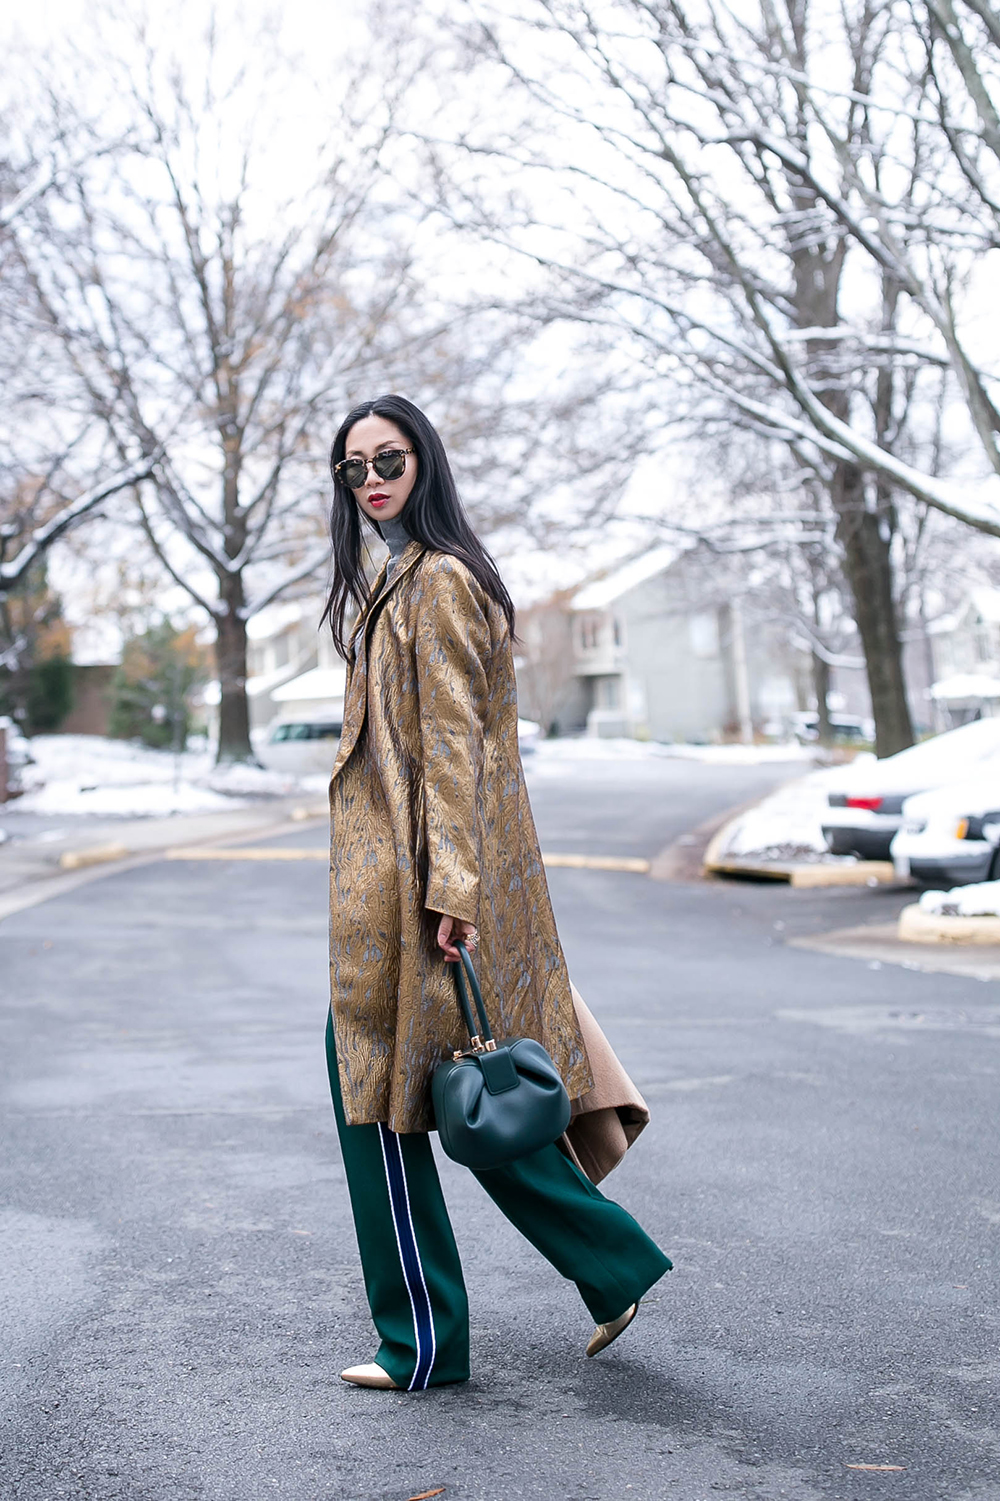 gold-and-green-winter-outfit-petiteflowerpresents.jpg